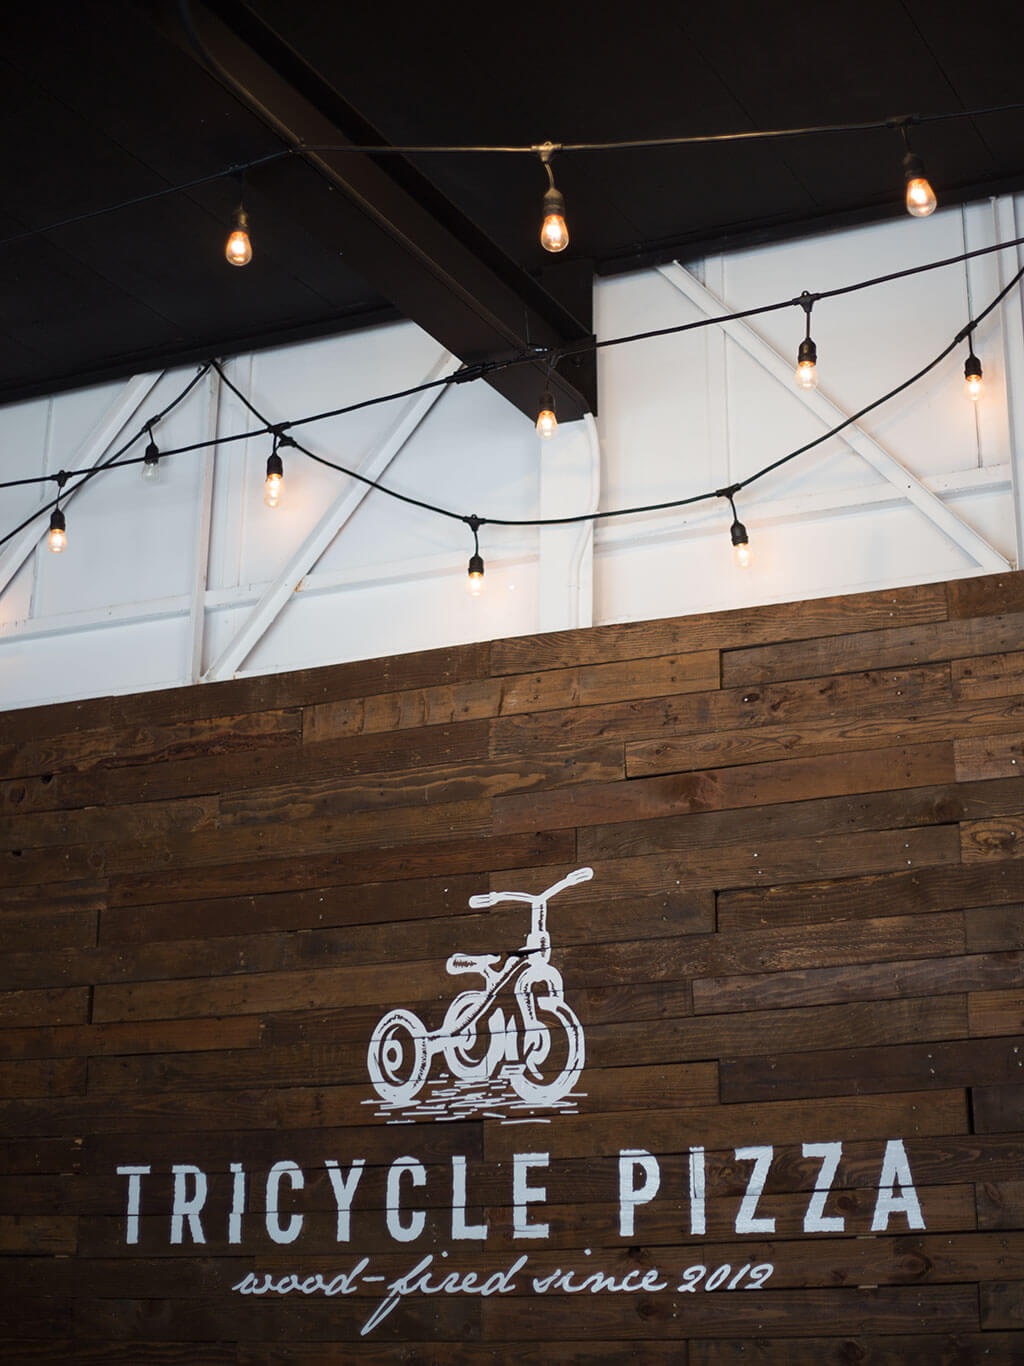 drive-swim-fly-tricycle-pizza-monterey-california-food-truck-bike-indoor-seating-sign